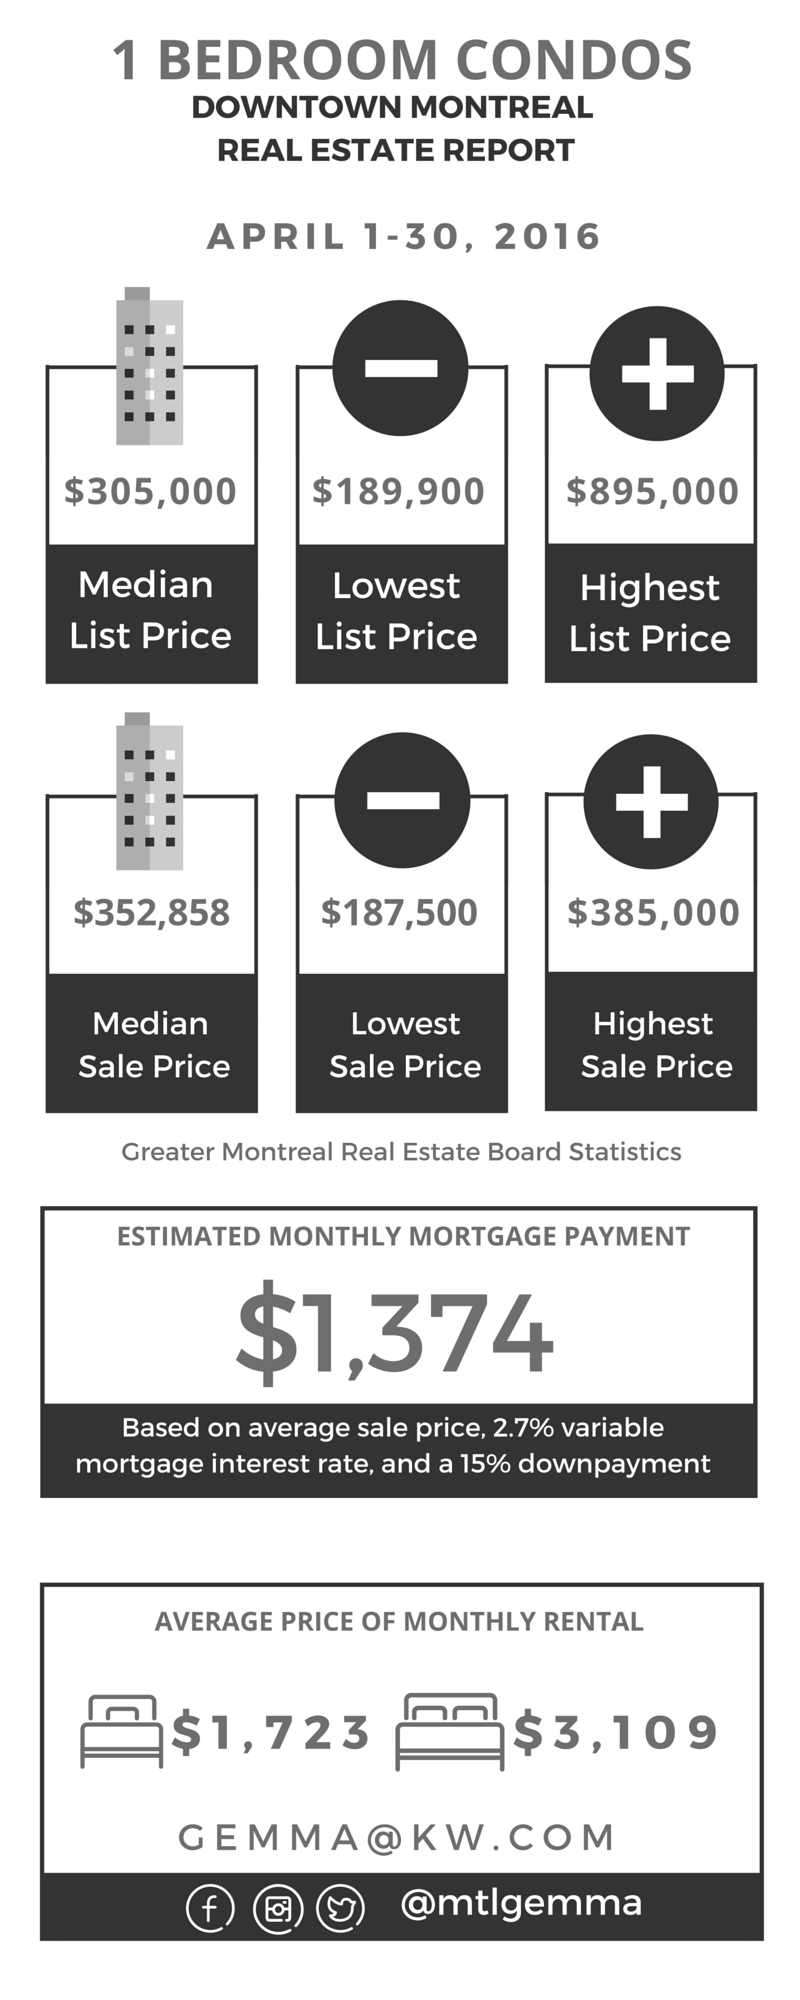 Downtown Montreal Real Estate Report April 2016 02